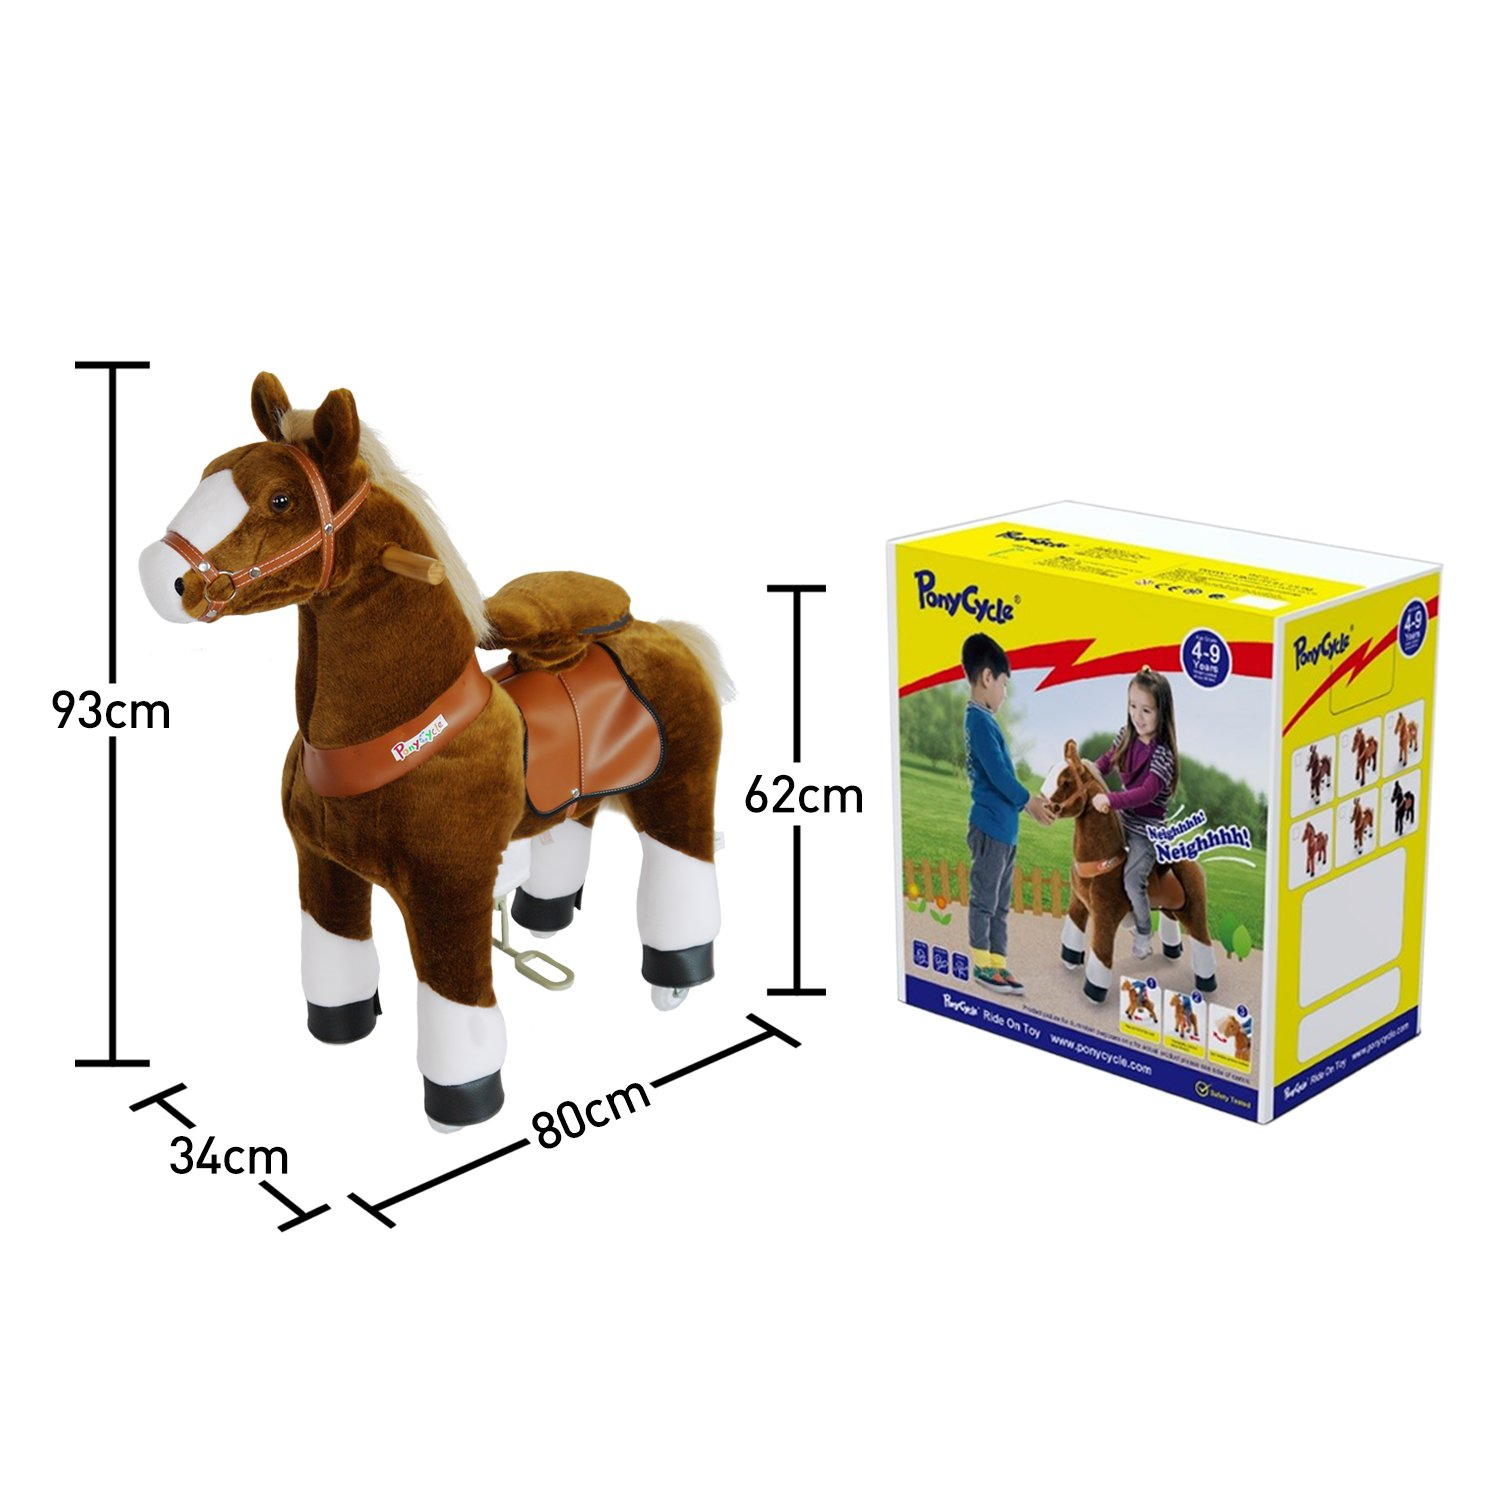 PonyCycle Official Ride-On Horse No Battery No Electricity Mechanical Pony Brown with White Hoof Giddy up Pony Plush Walking Animal for Age 4-9 Years Medium Size - N4151 by PonyCycle (Image #4)